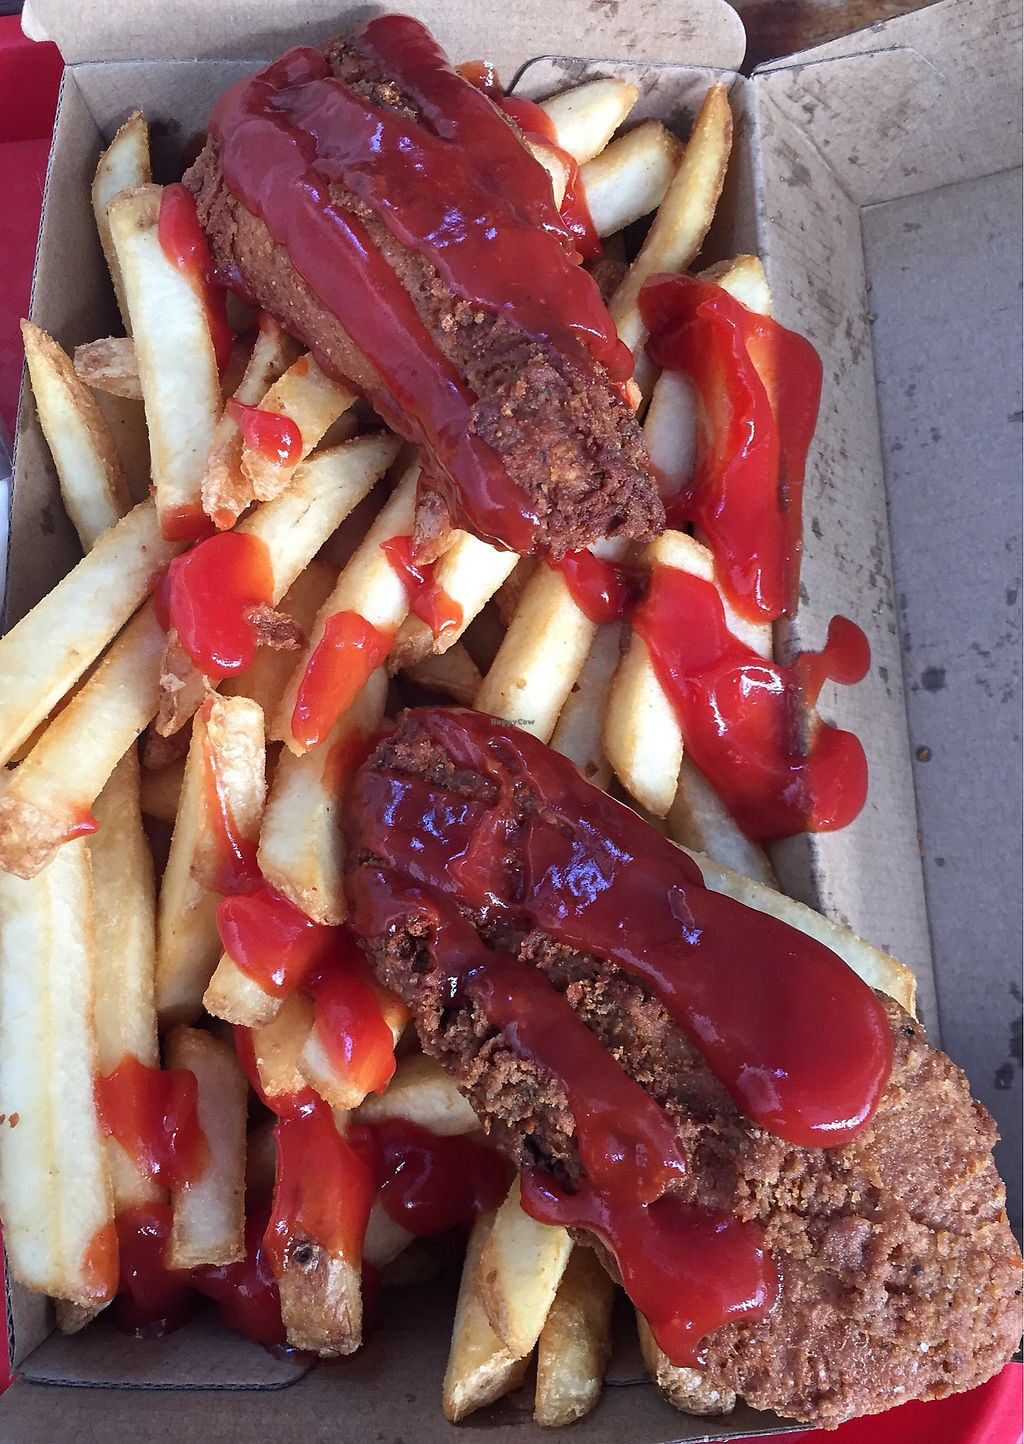 """Photo of Lord of the Fries - Britomart  by <a href=""""/members/profile/Jameskille"""">Jameskille</a> <br/>fried chick'n <br/> July 25, 2017  - <a href='/contact/abuse/image/82326/284608'>Report</a>"""